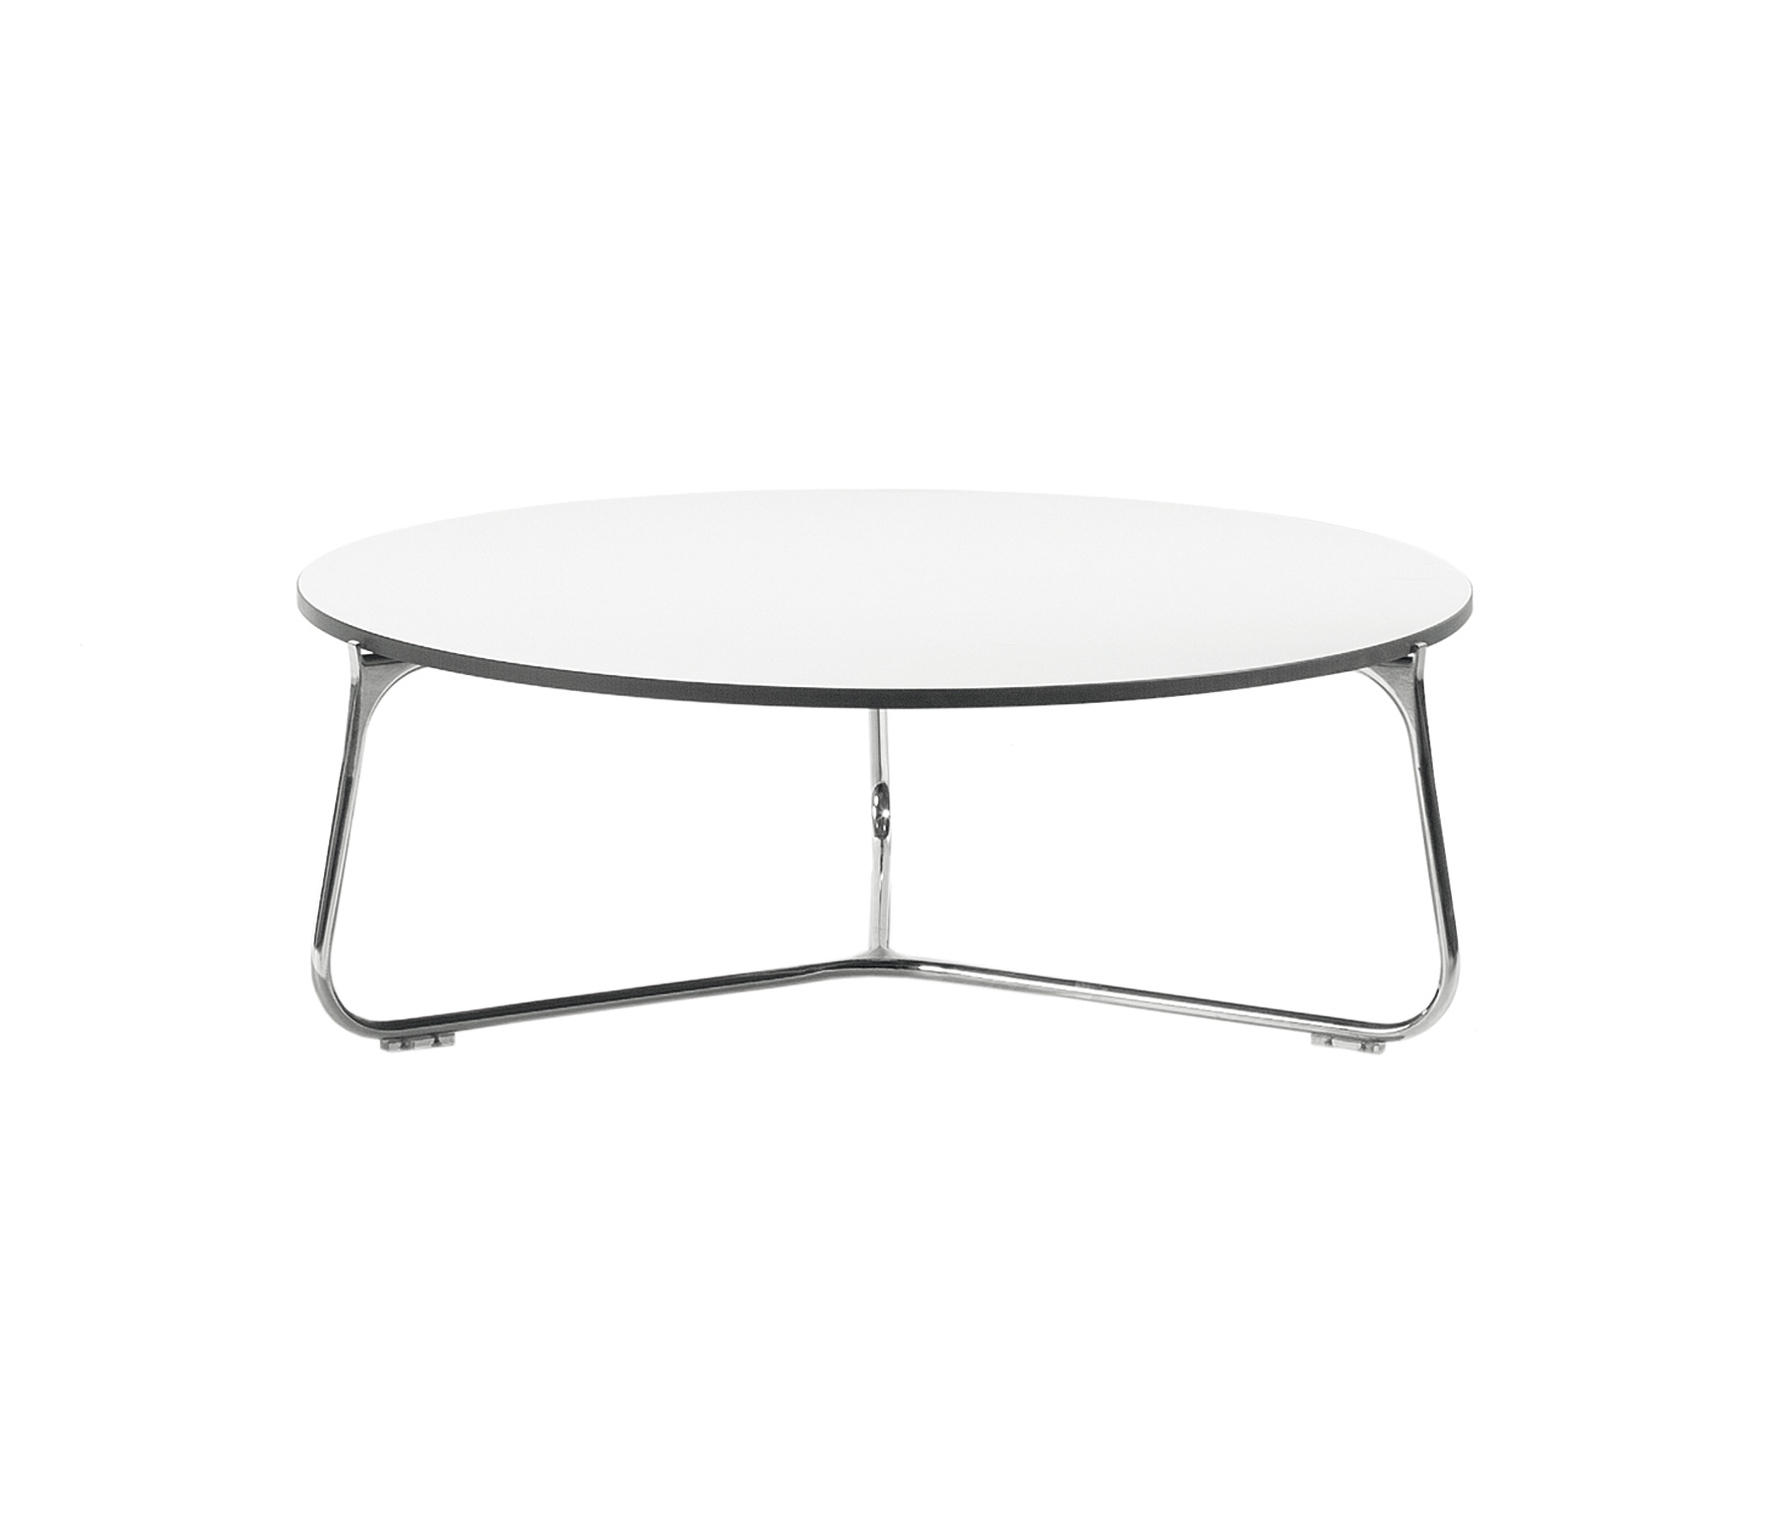 Mood coffee table 80 coffee tables from manutti architonic for Coffee table 80 x 80